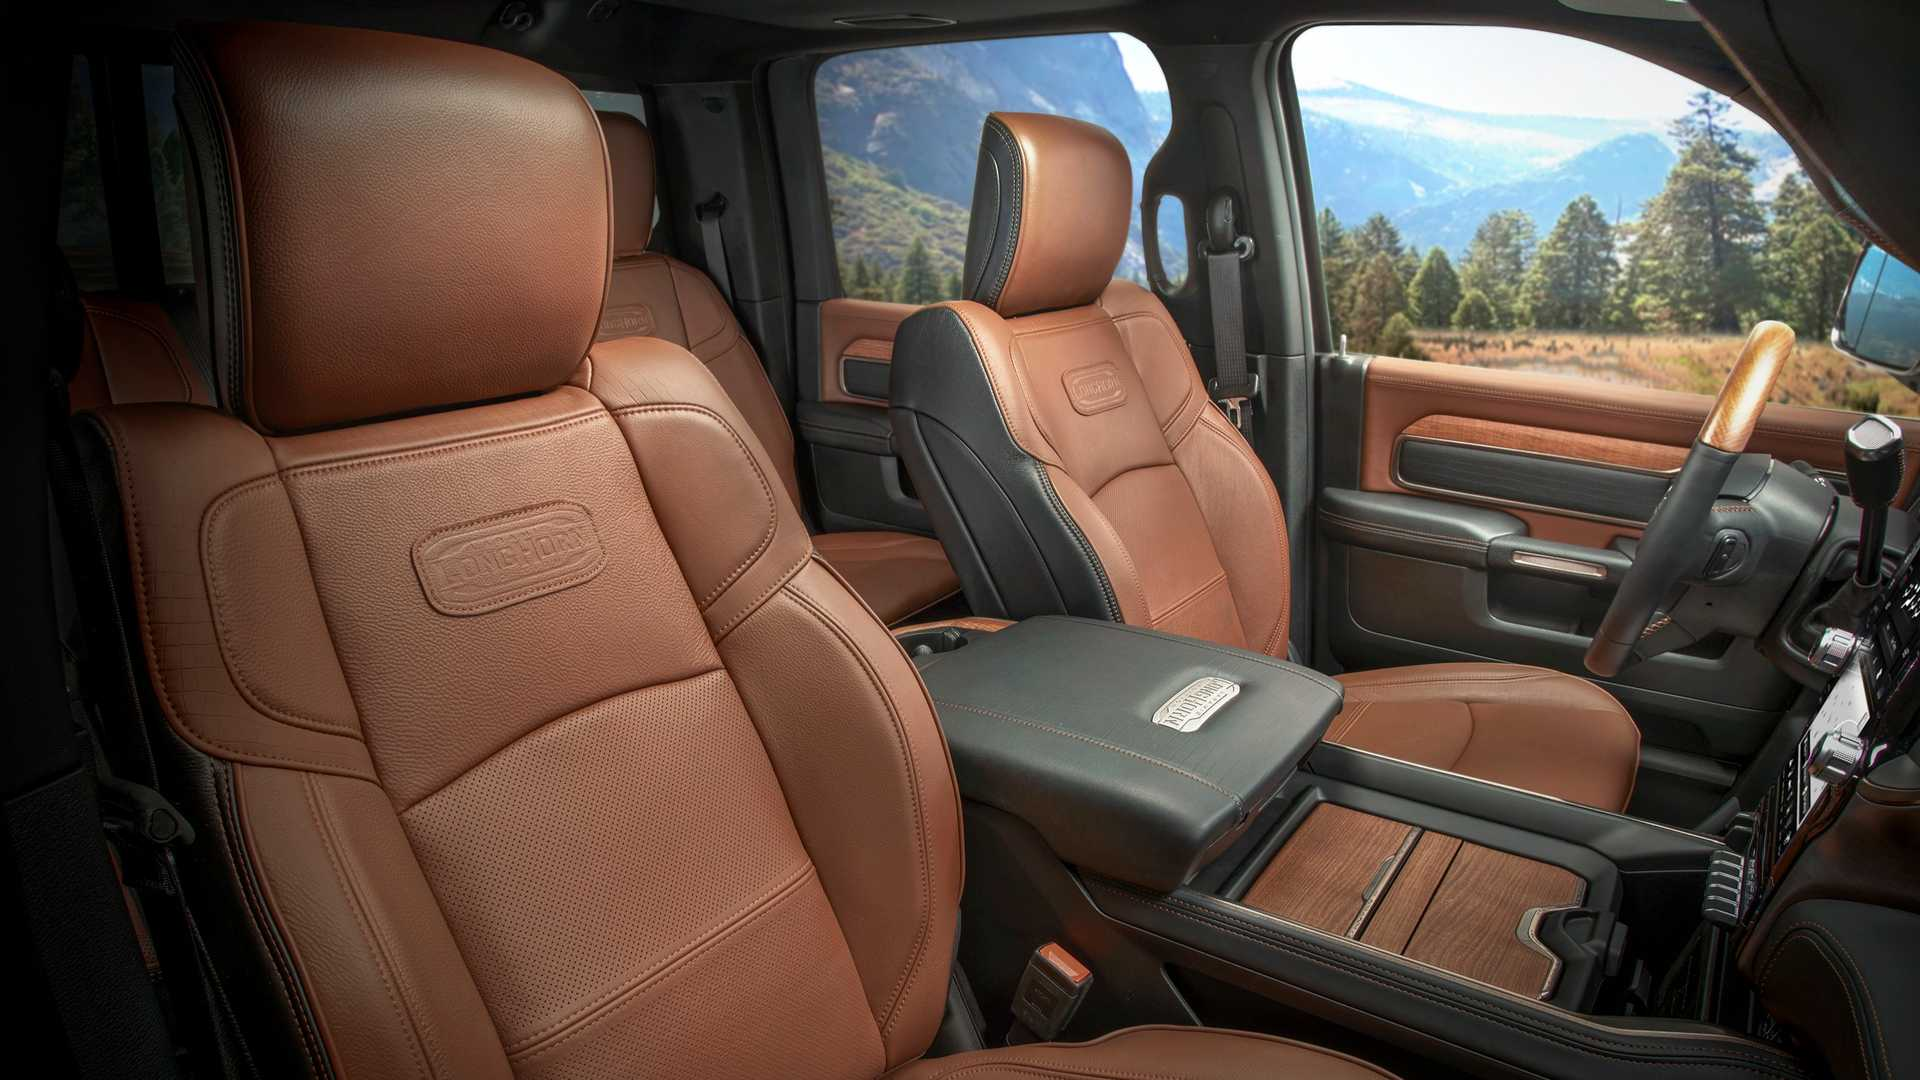 2019 Ram HD Laramie Longhorn Features Real Wood, Leather, Steel Trim - autoevolution